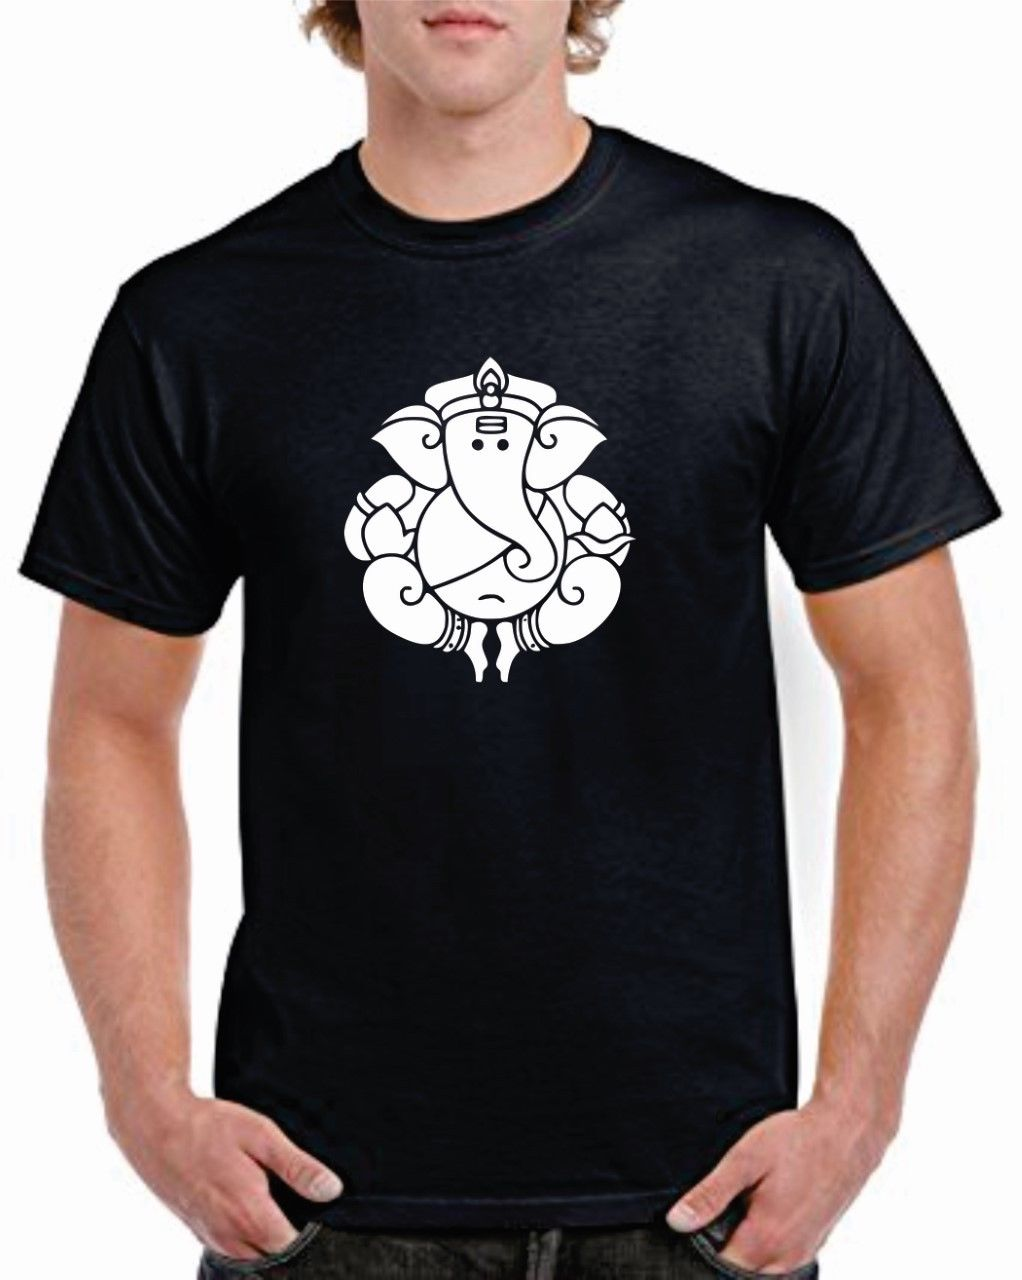 INDIAN ELEFANT Gut Brust Aufdruck T-Shirt GANESH RELIGION HIPPIE MODE T-Shirt Print T Shirt Men Brand Clothing